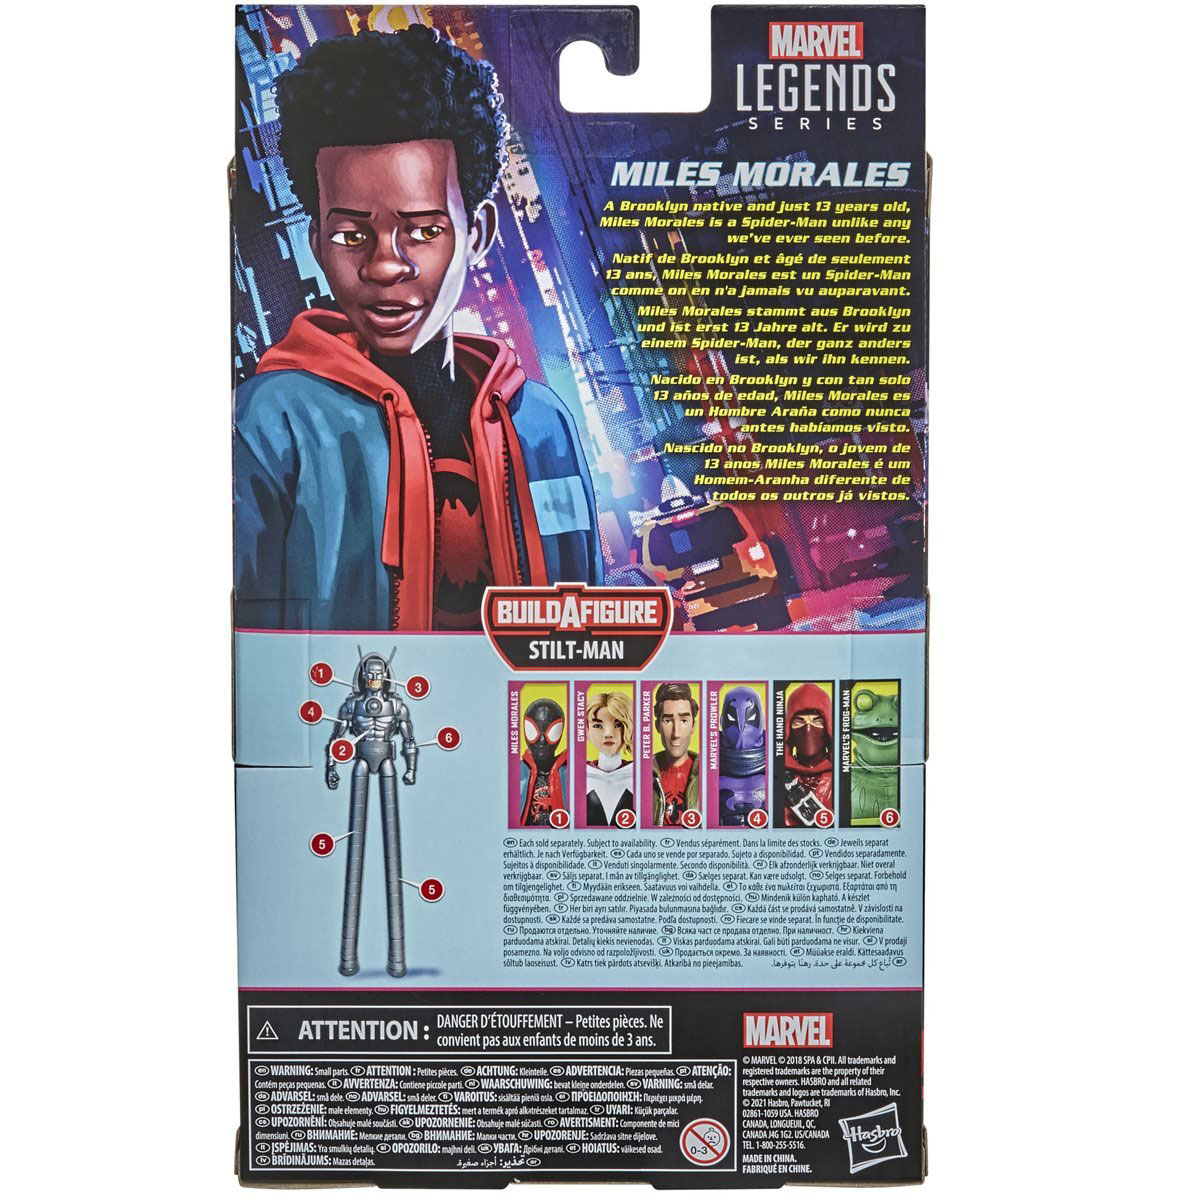 marvel-legends-miles-morales-spider-man-action-figure-packaging-back